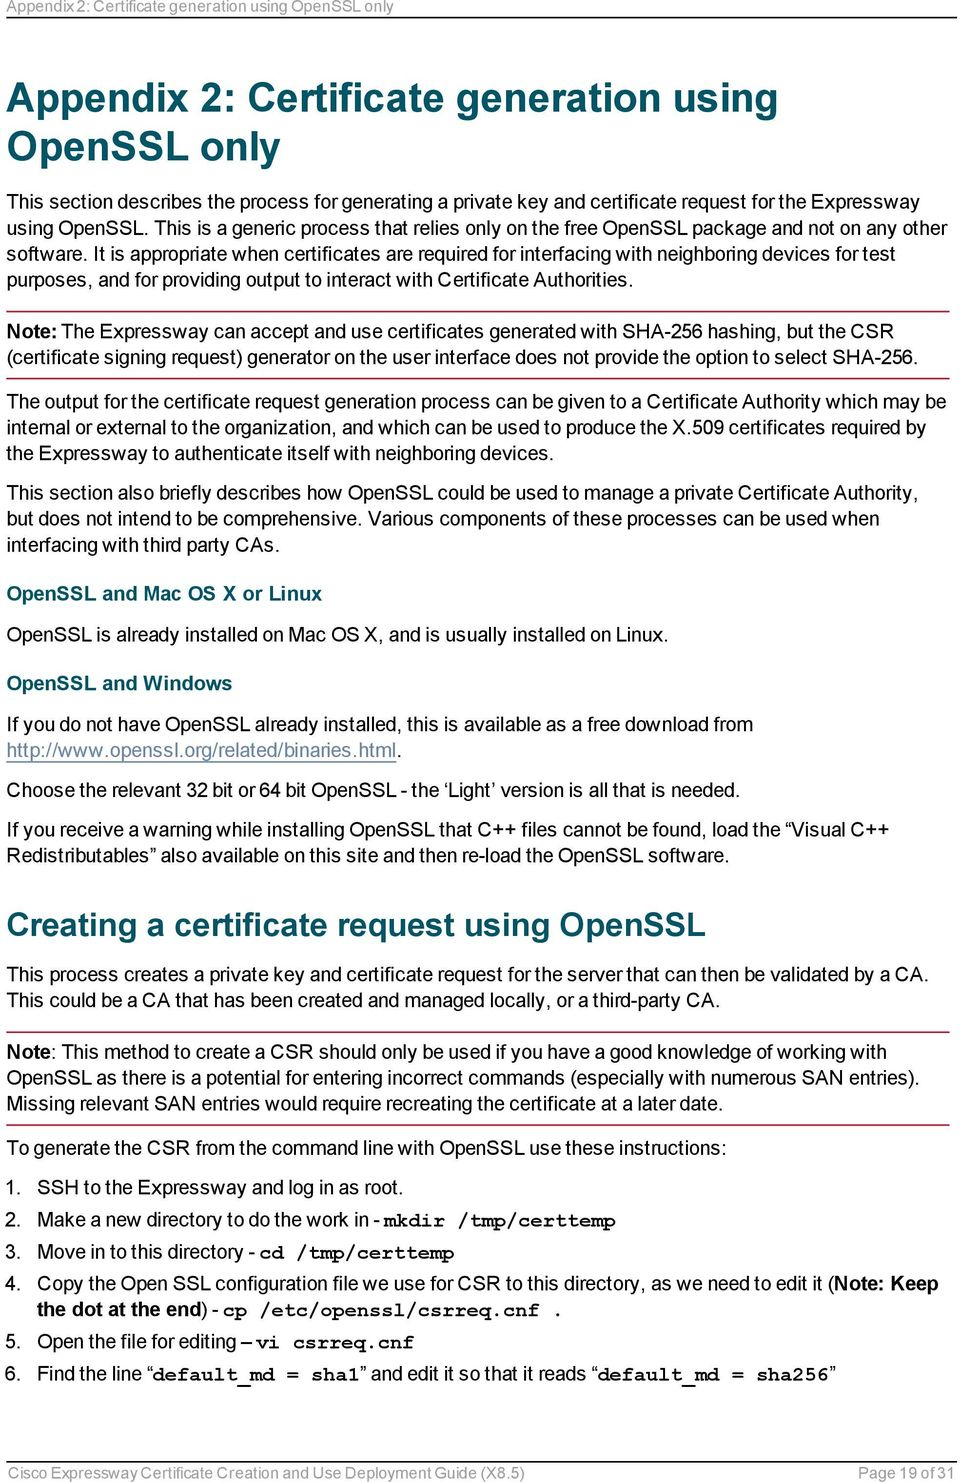 Cisco Expressway Certificate Creation and Use - PDF